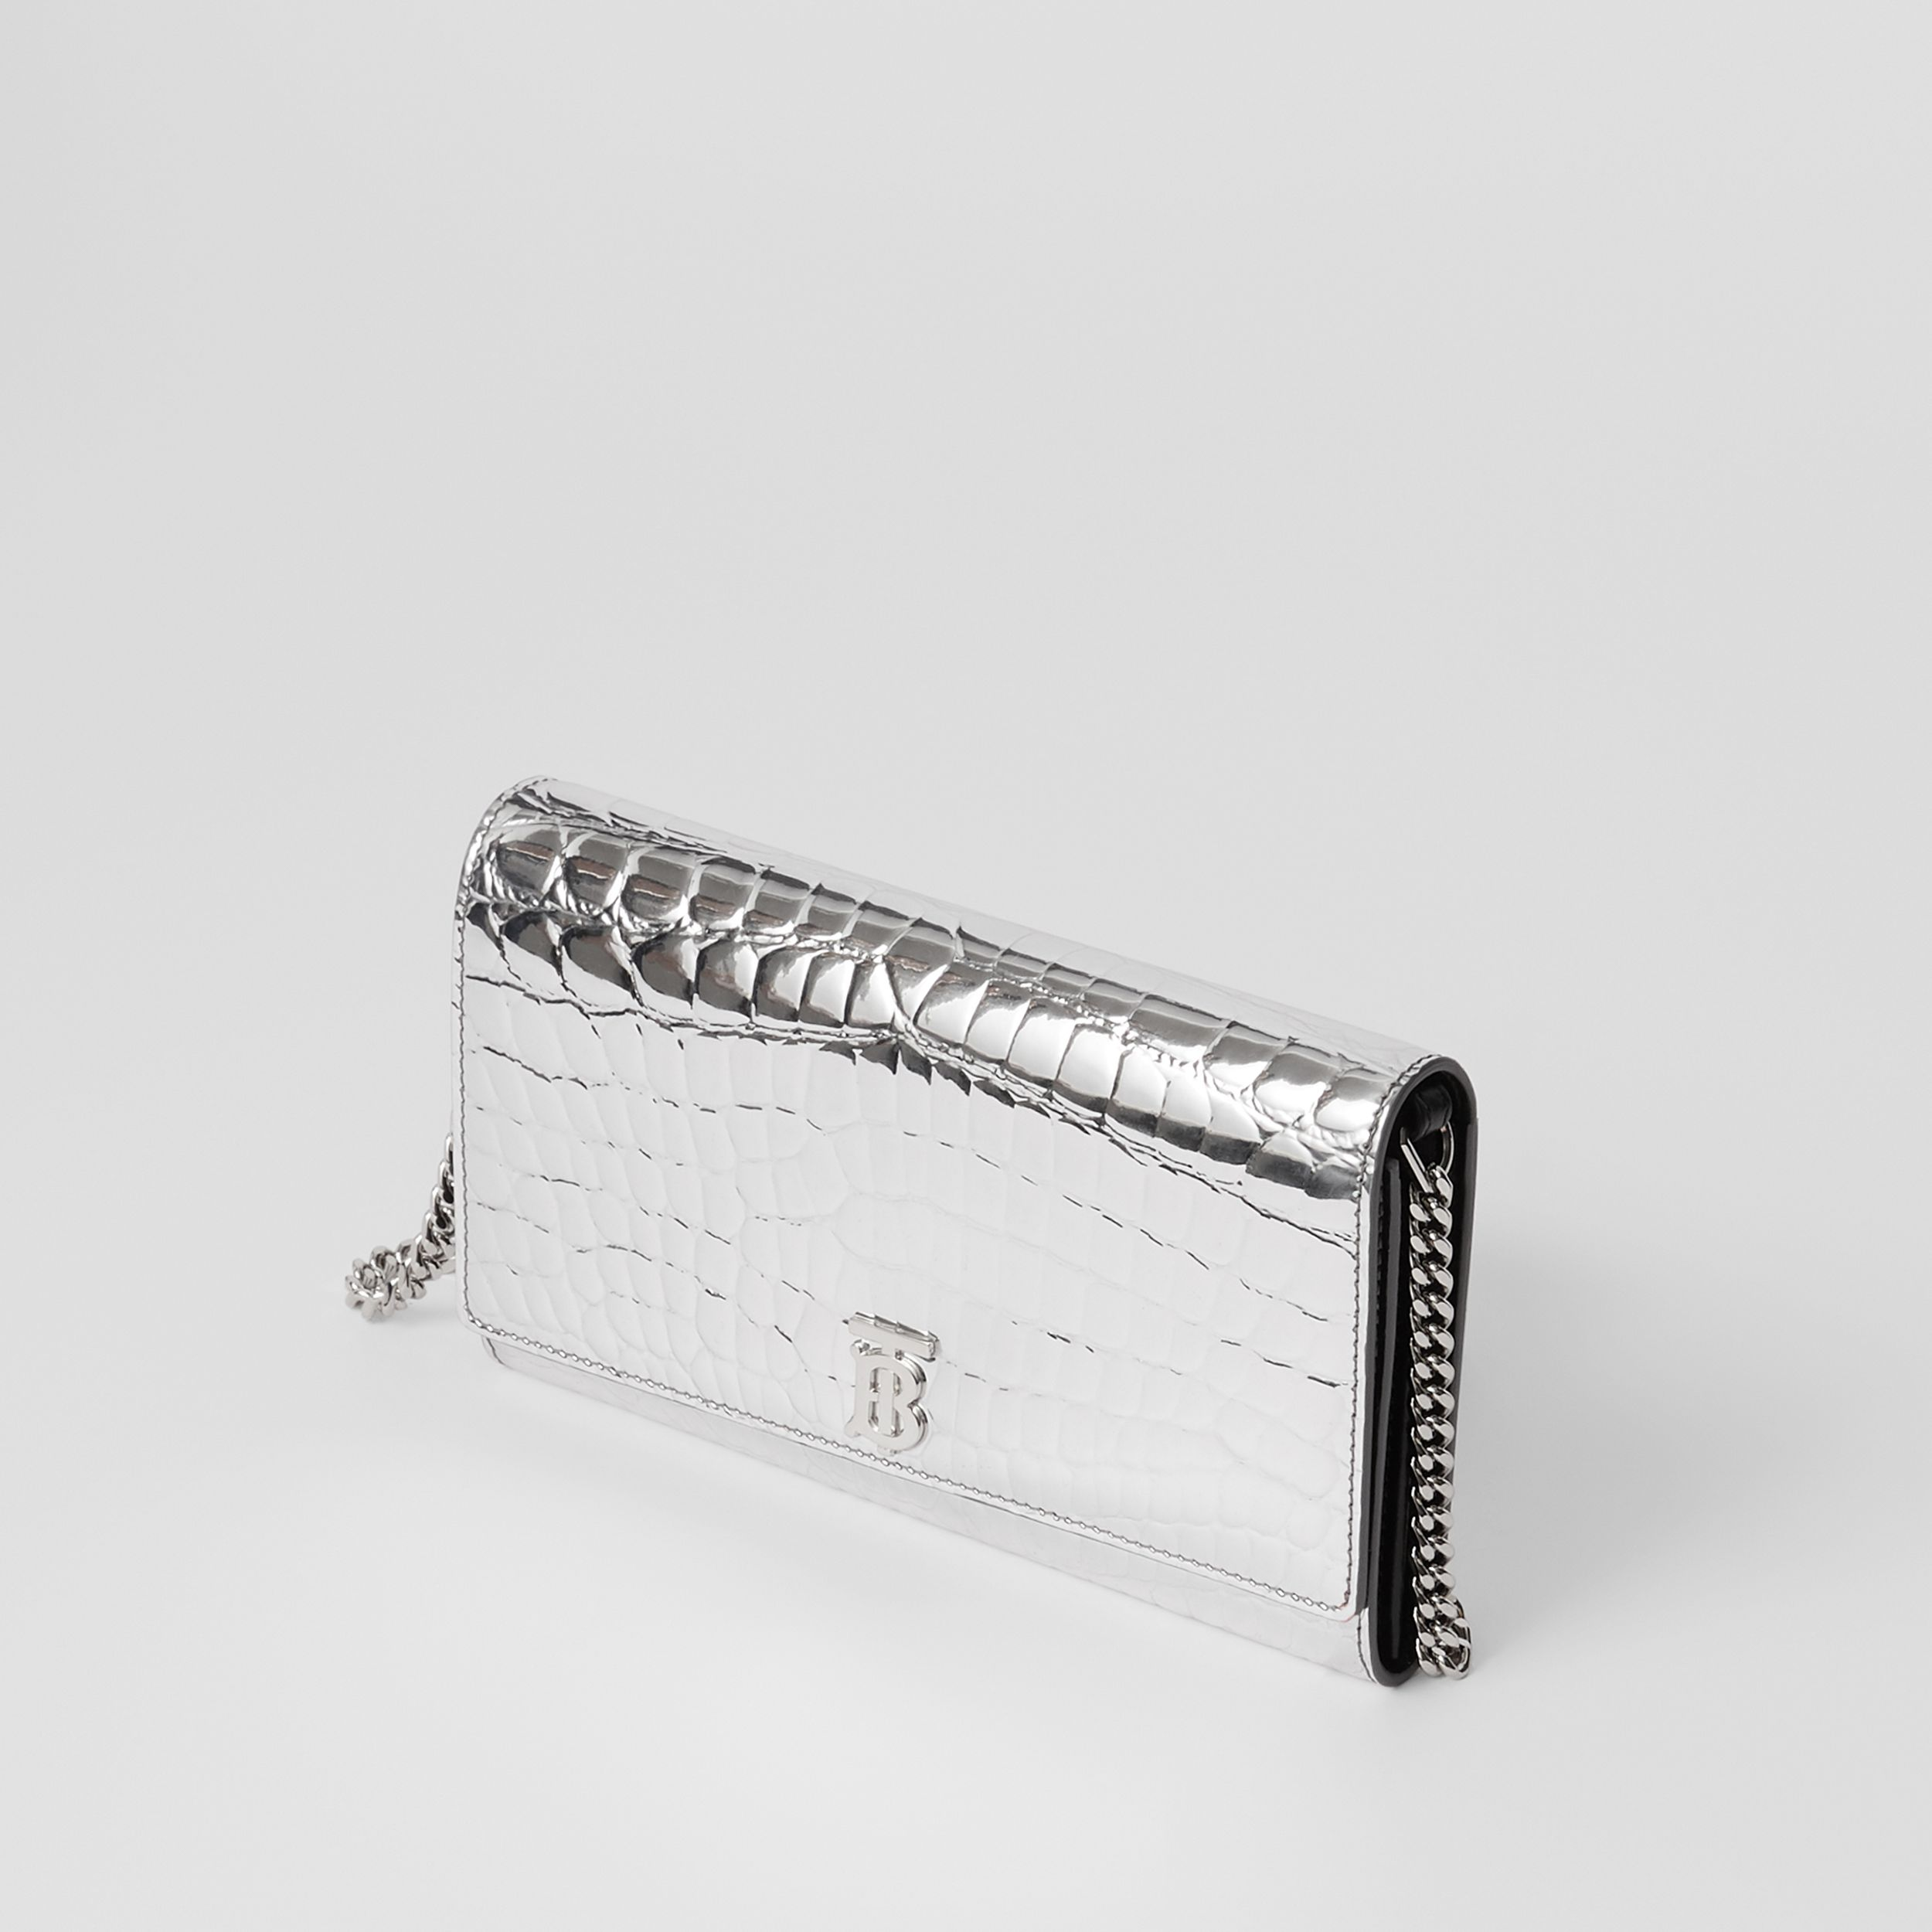 Metallic Embossed Wallet with Detachable Strap in Silver - Women | Burberry - 4